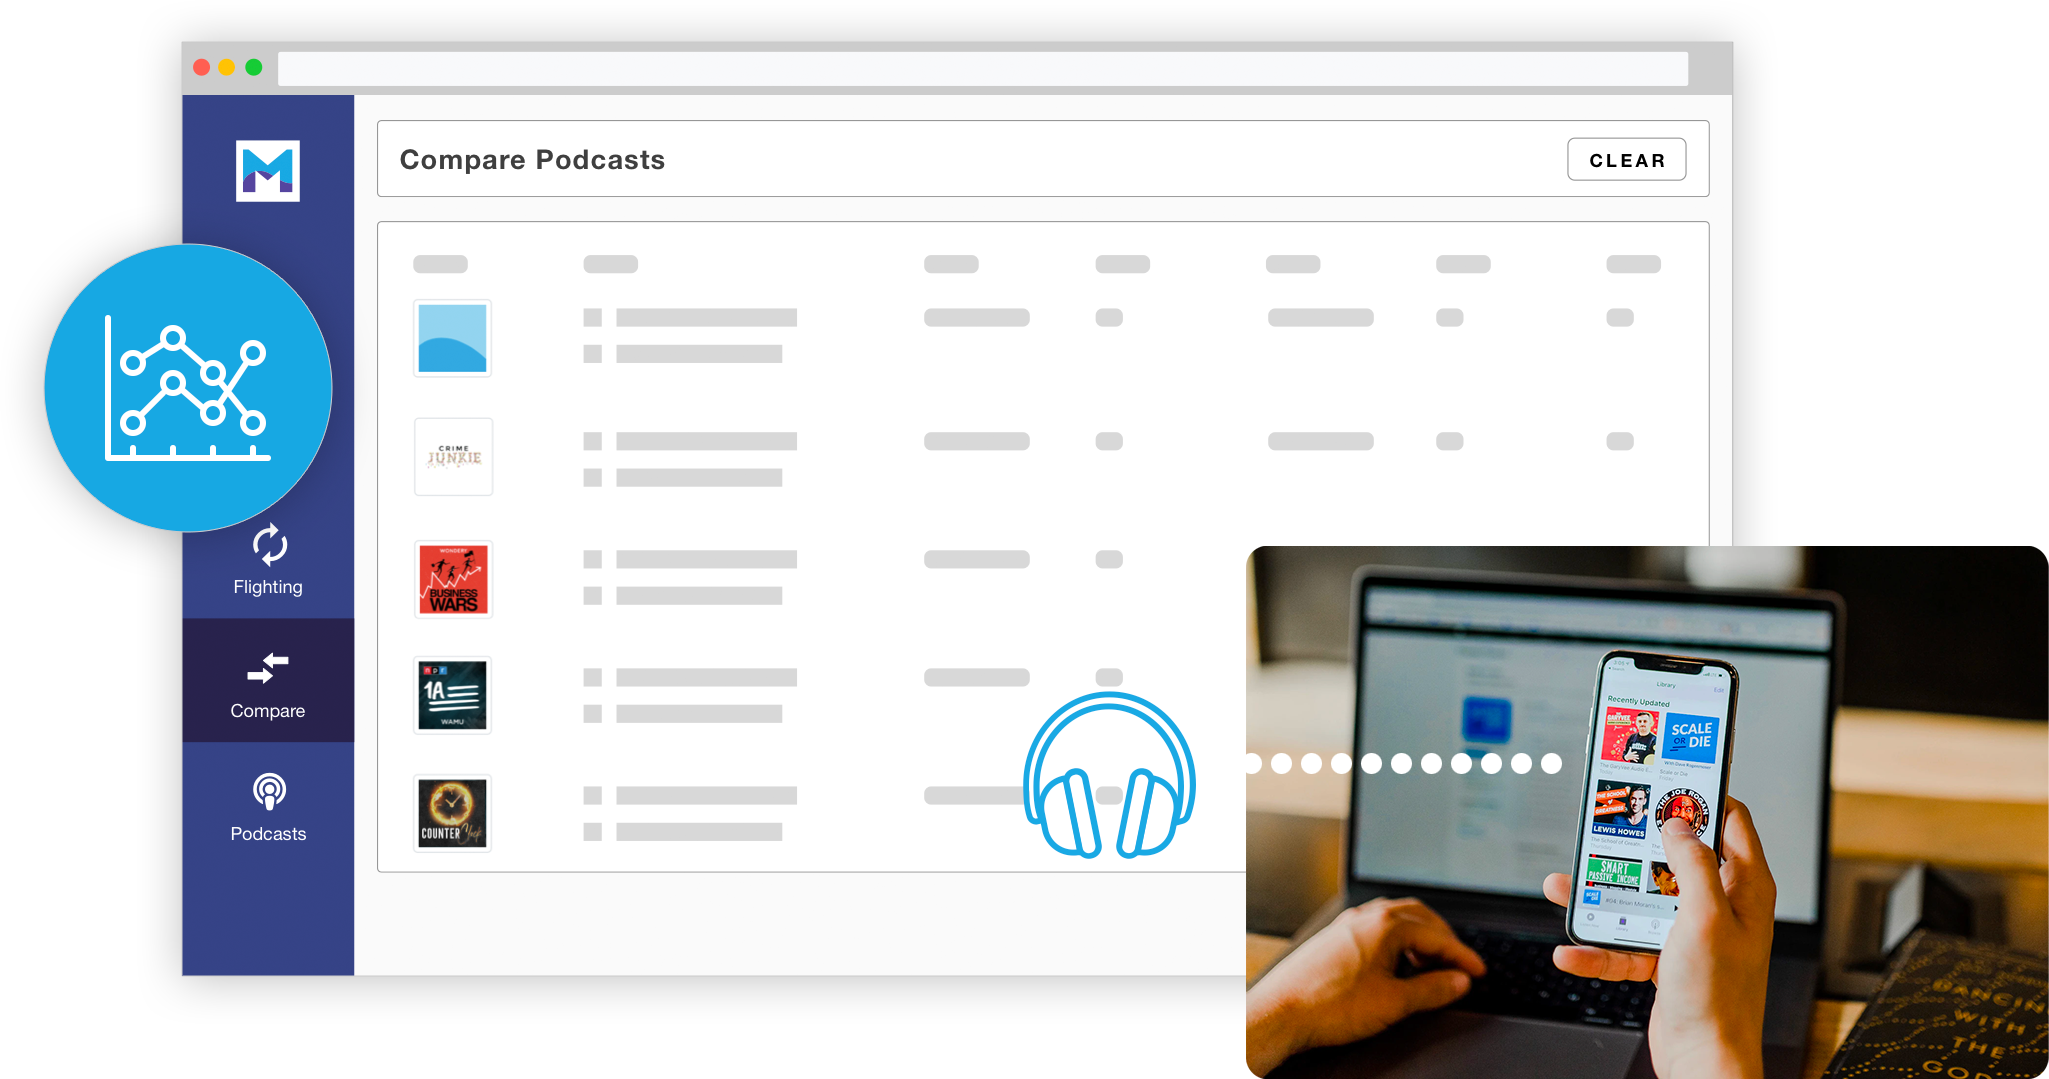 A stylized image of Magellan AI platform showing the compare podcasts feature